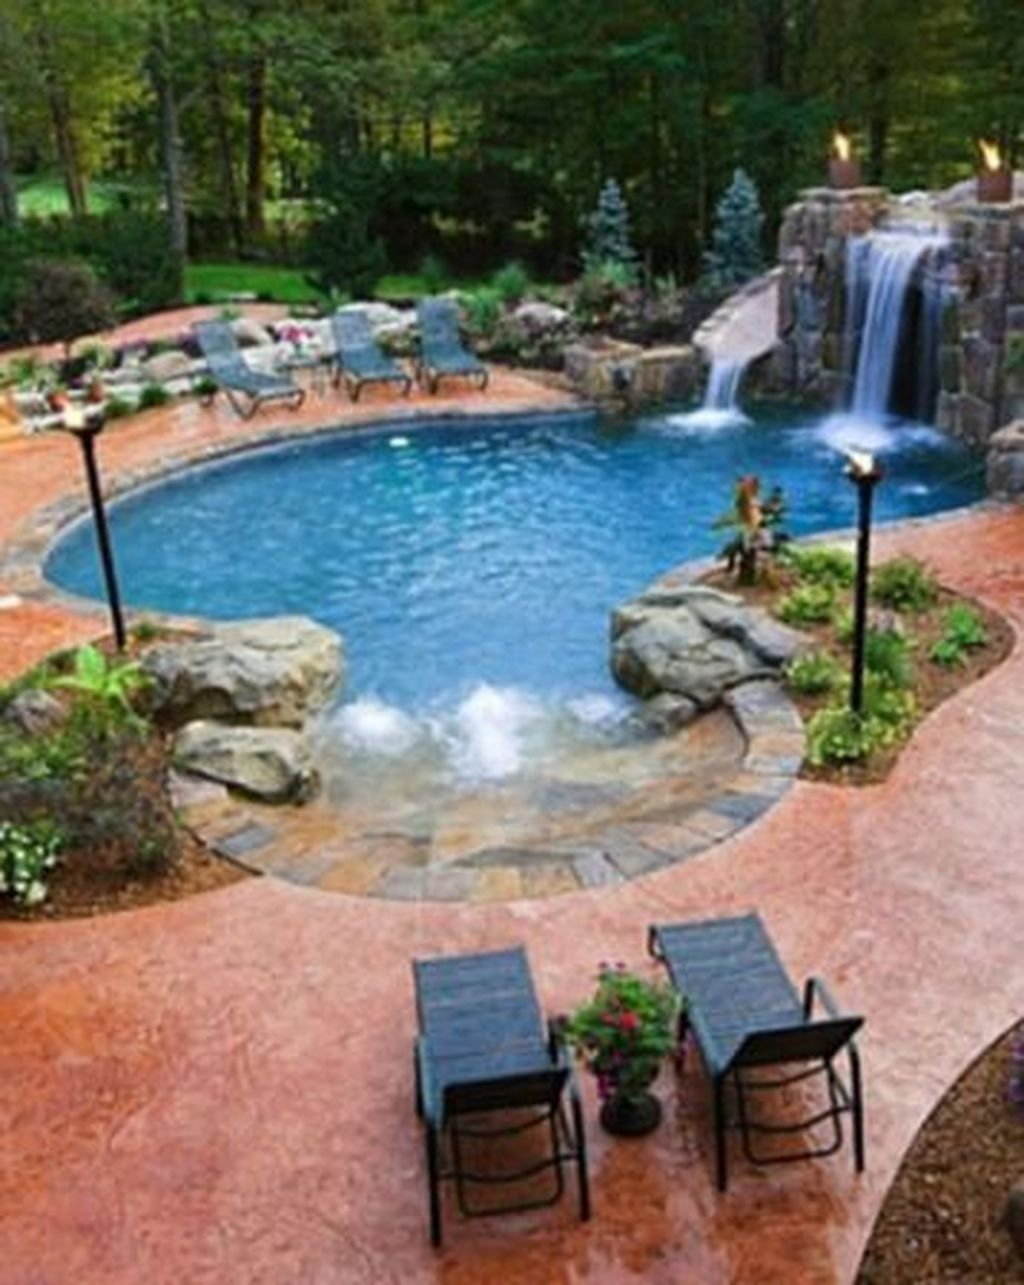 35 Remarkable Cool Backyard Pools For Inspiration Cool Swimming Pools Swimming Pools Backyard Pool Houses